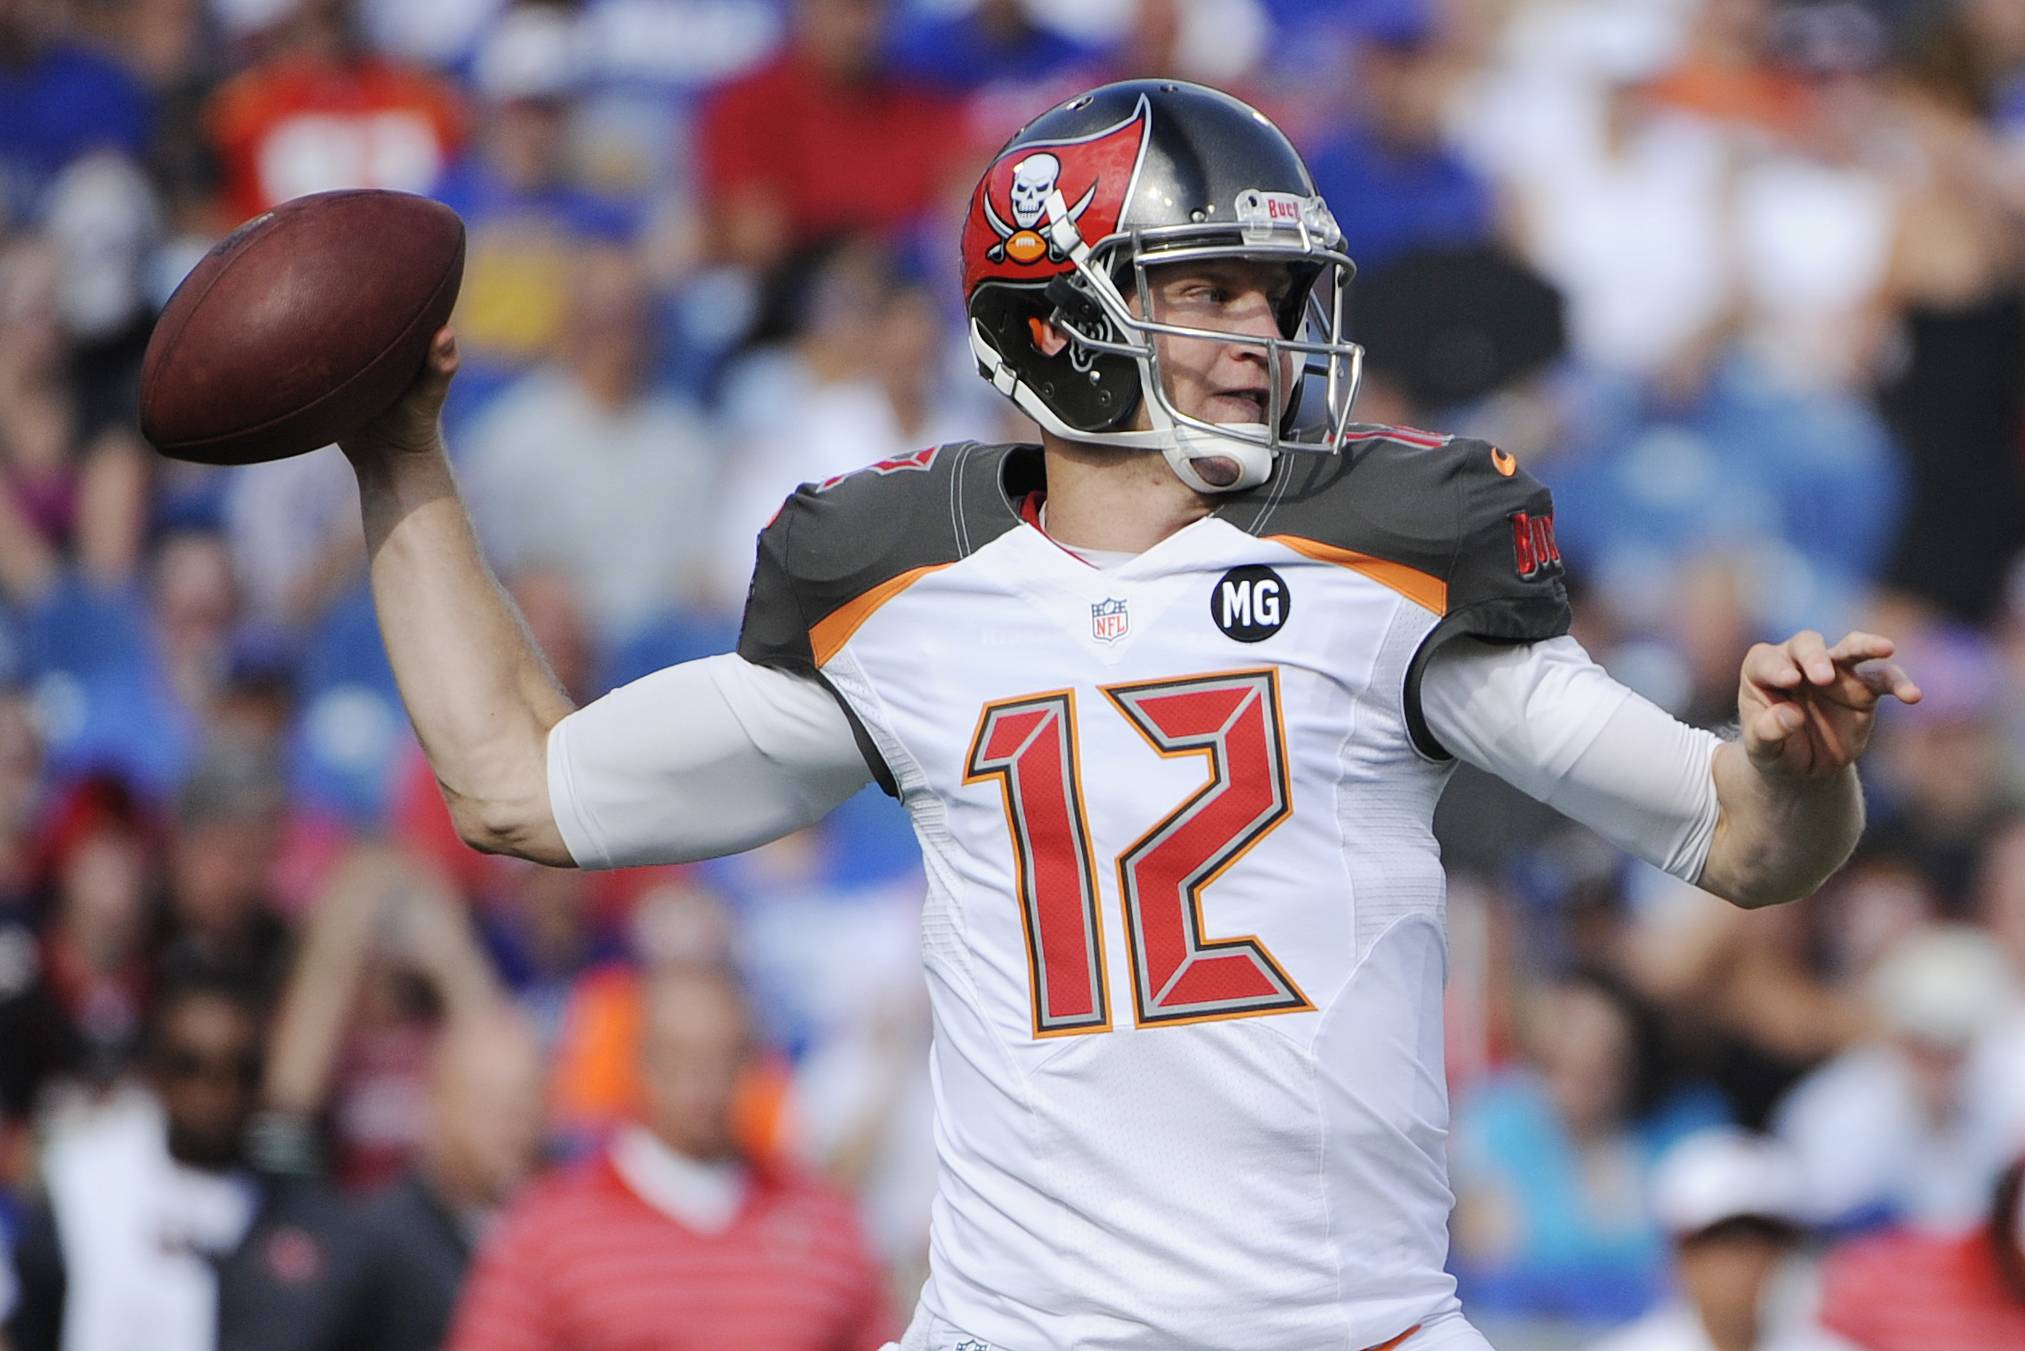 Although Tampa Bay quarterback Josh McCown completed 13 of 16 passes in his third preseason game with the Bucs, he has 2 touchdown passes and 2 interceptions in his three starts.